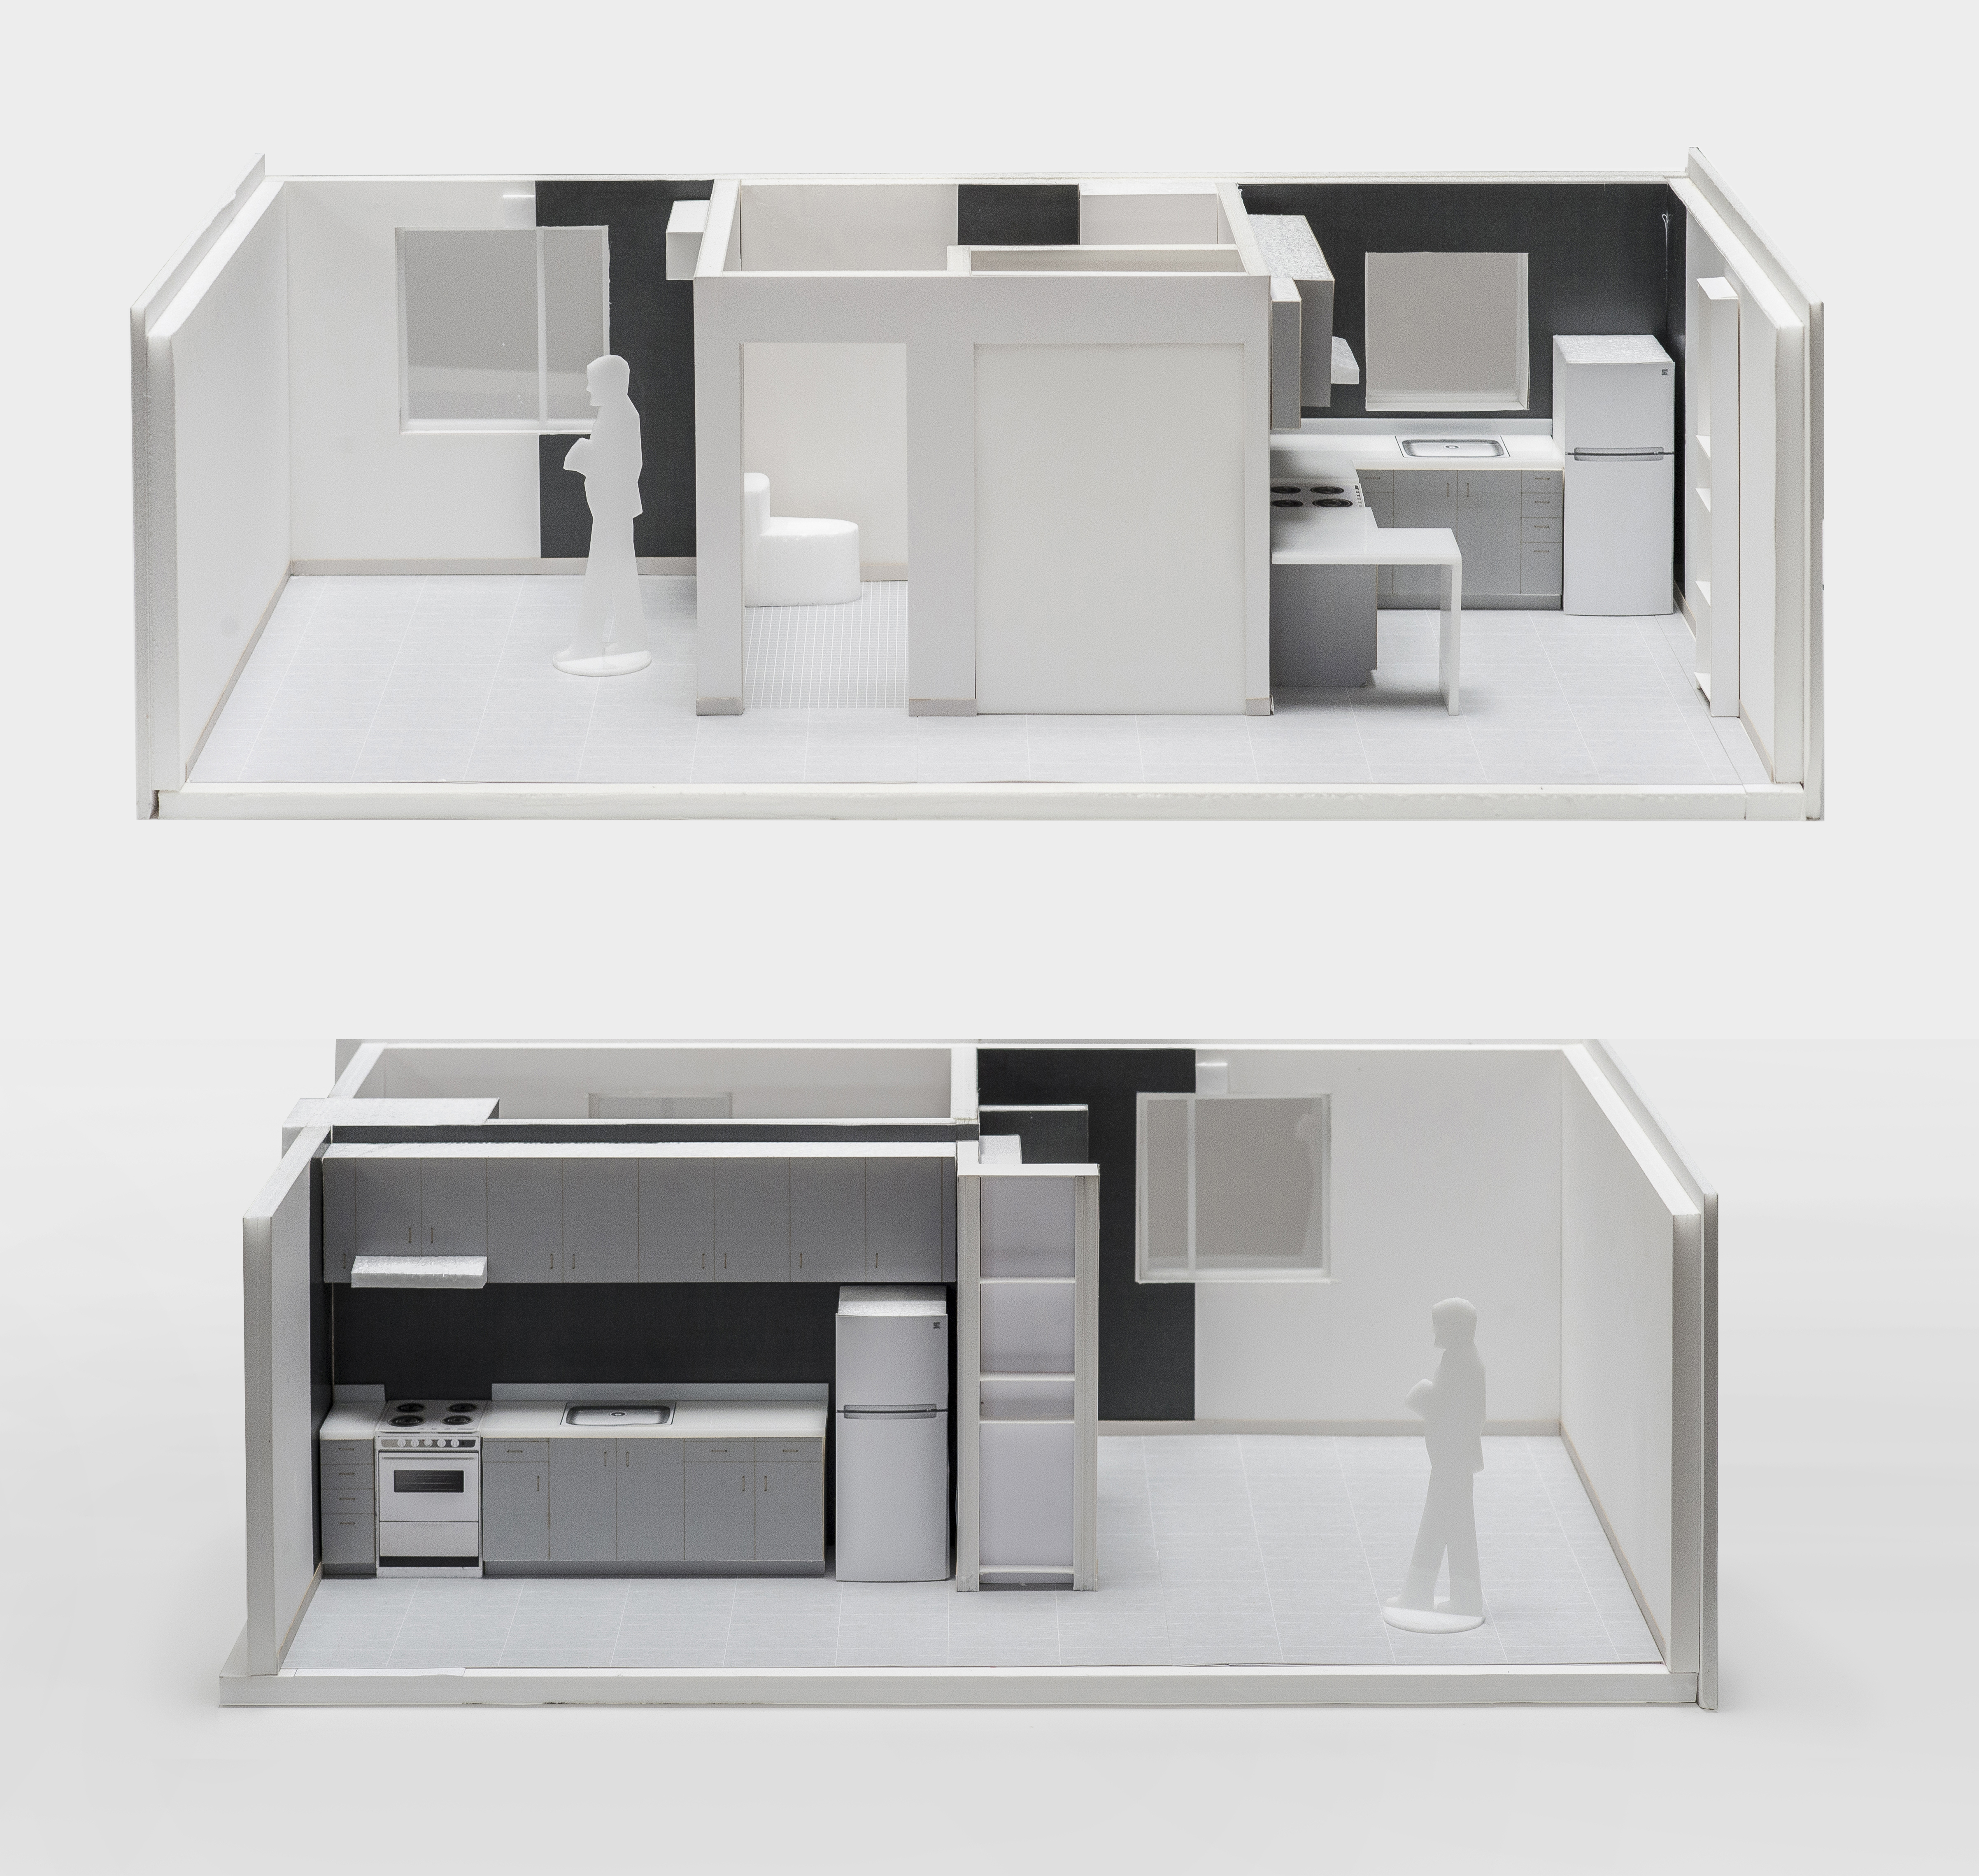 Social Transparency Projects On Housing - Columbia GSAPP